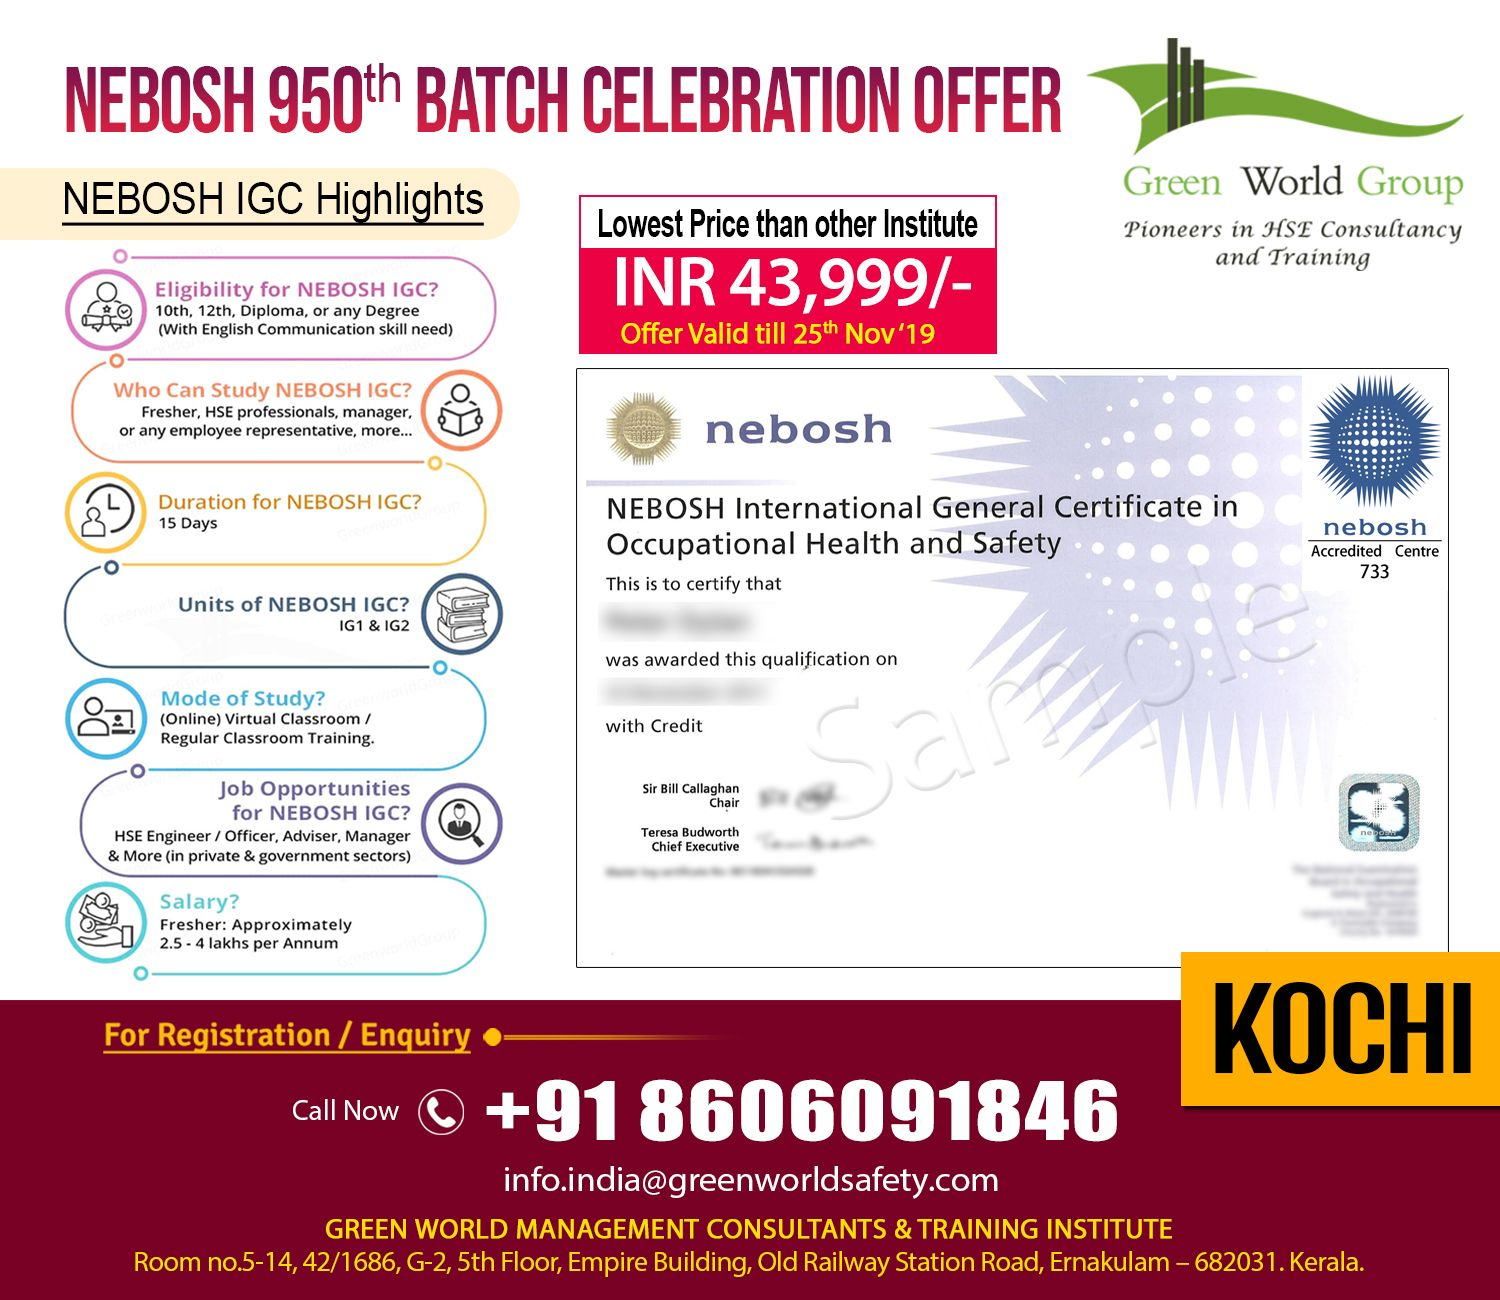 Exclusive Offer for Nebosh IGC Course Training in Cochin